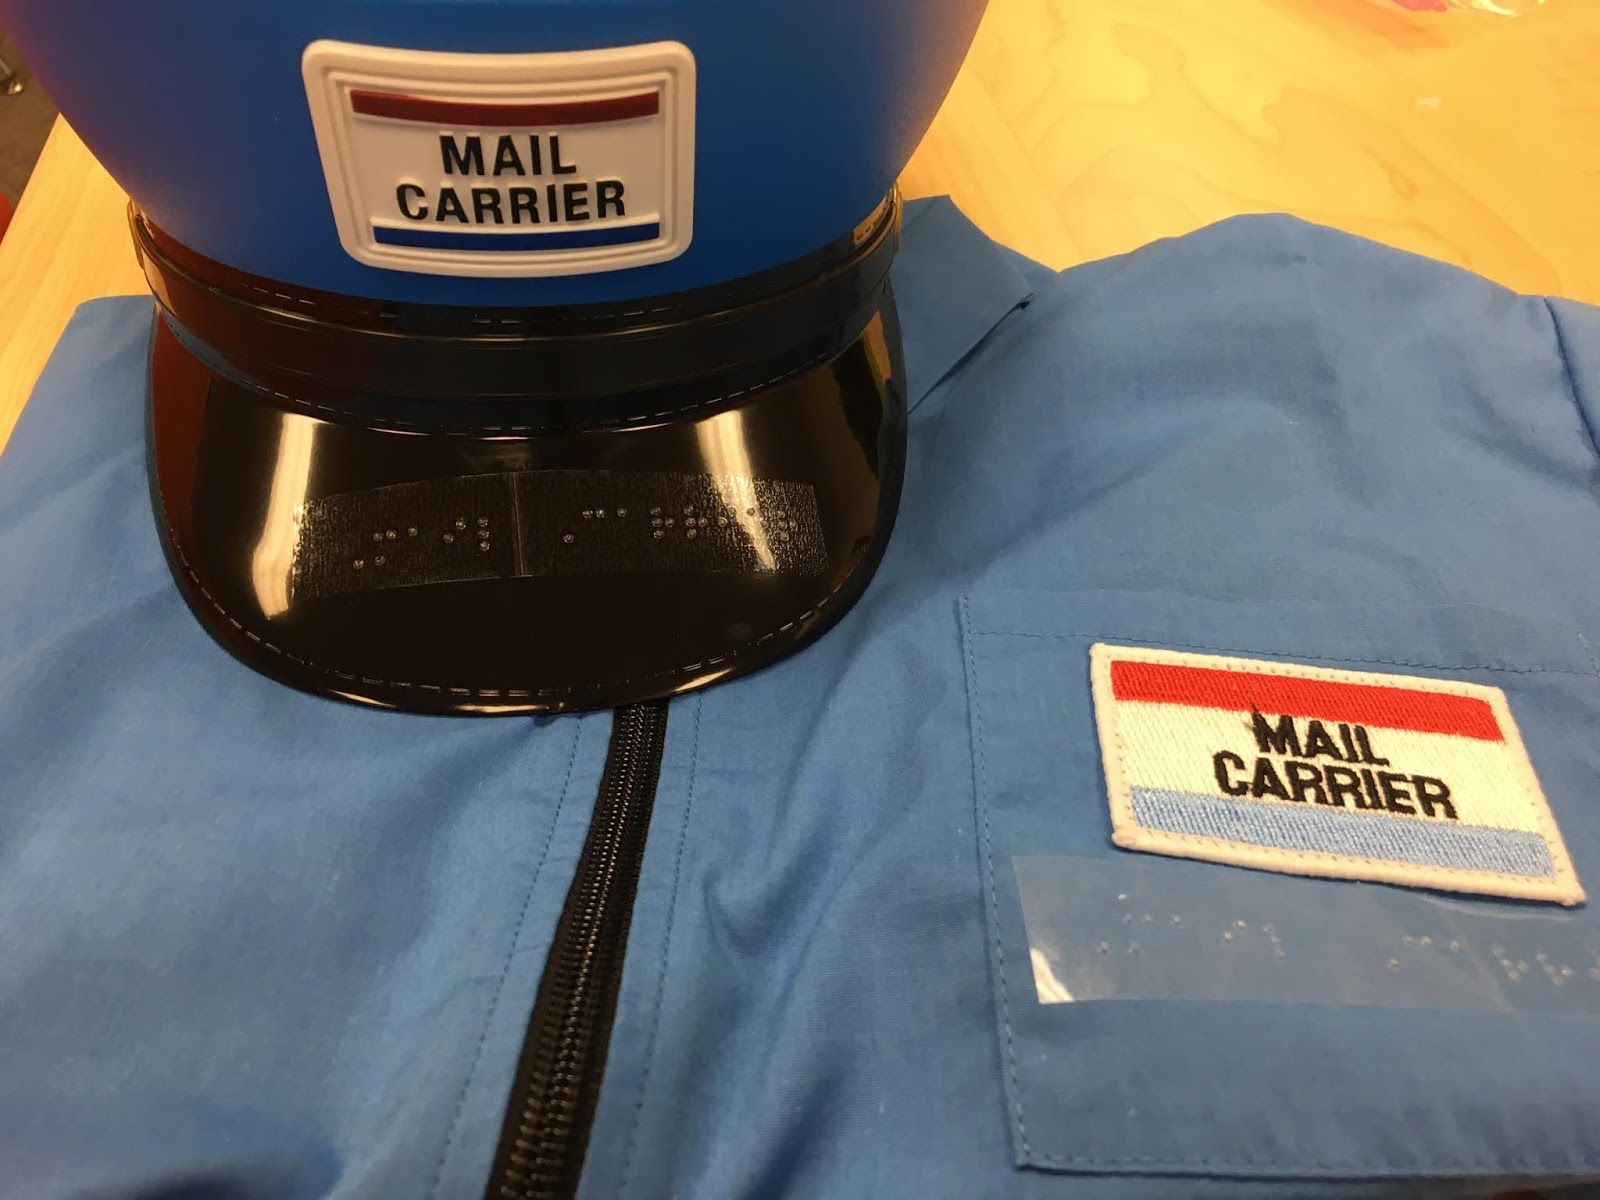 an image of the mail carrier dress up outfit with Braille label